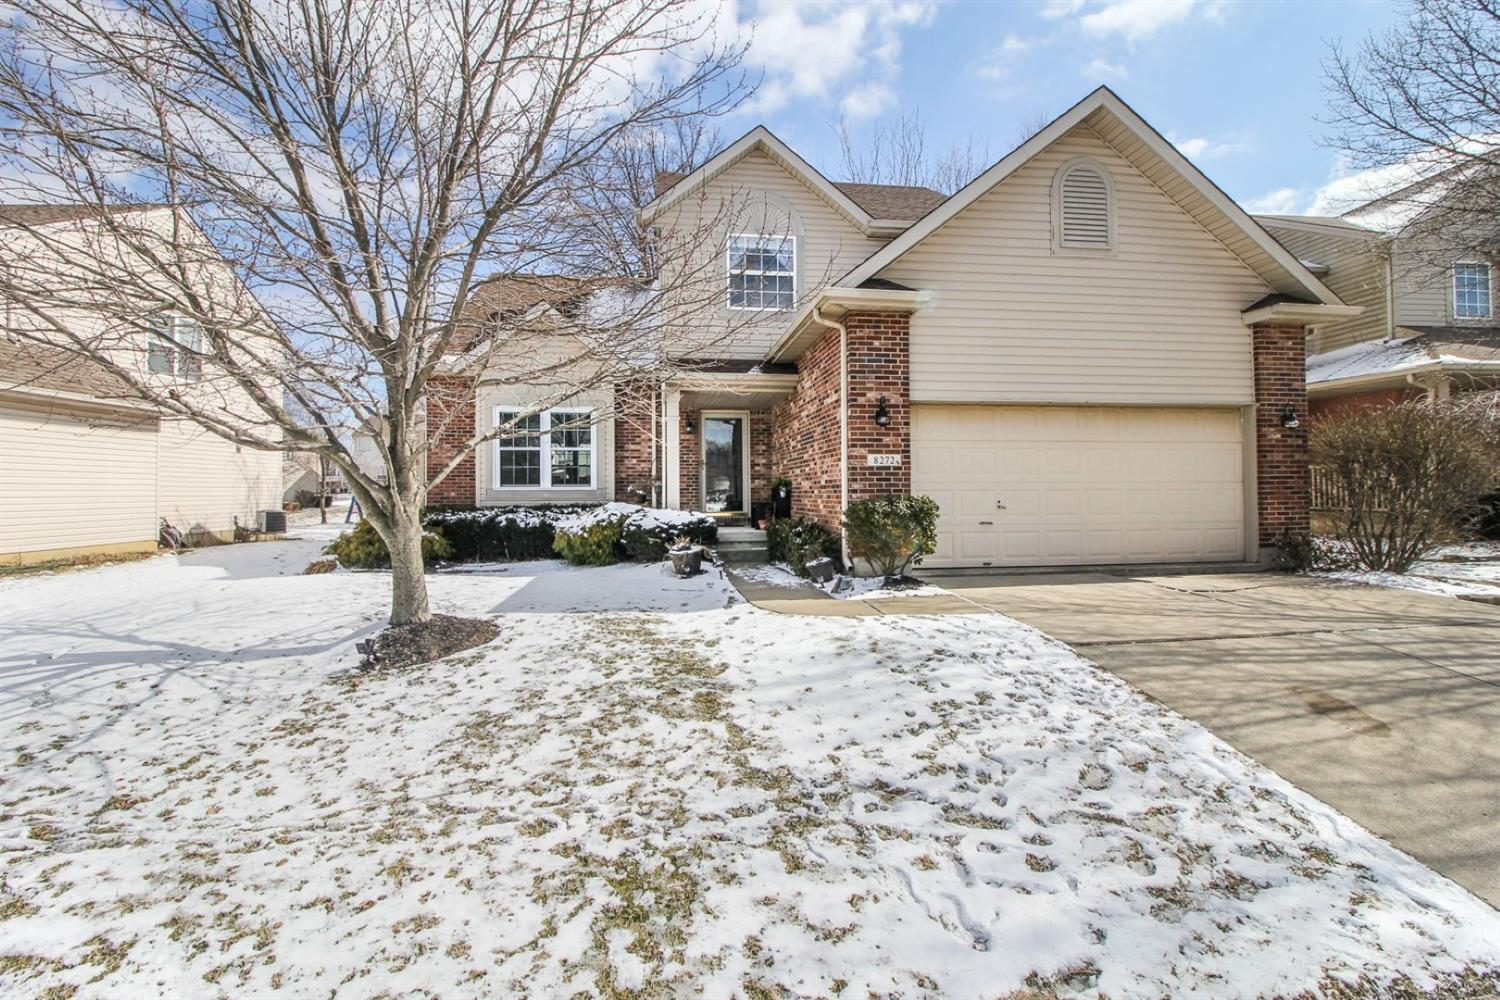 Property for sale at 8272 Simpson Creek Way, Deerfield Twp.,  Ohio 45040